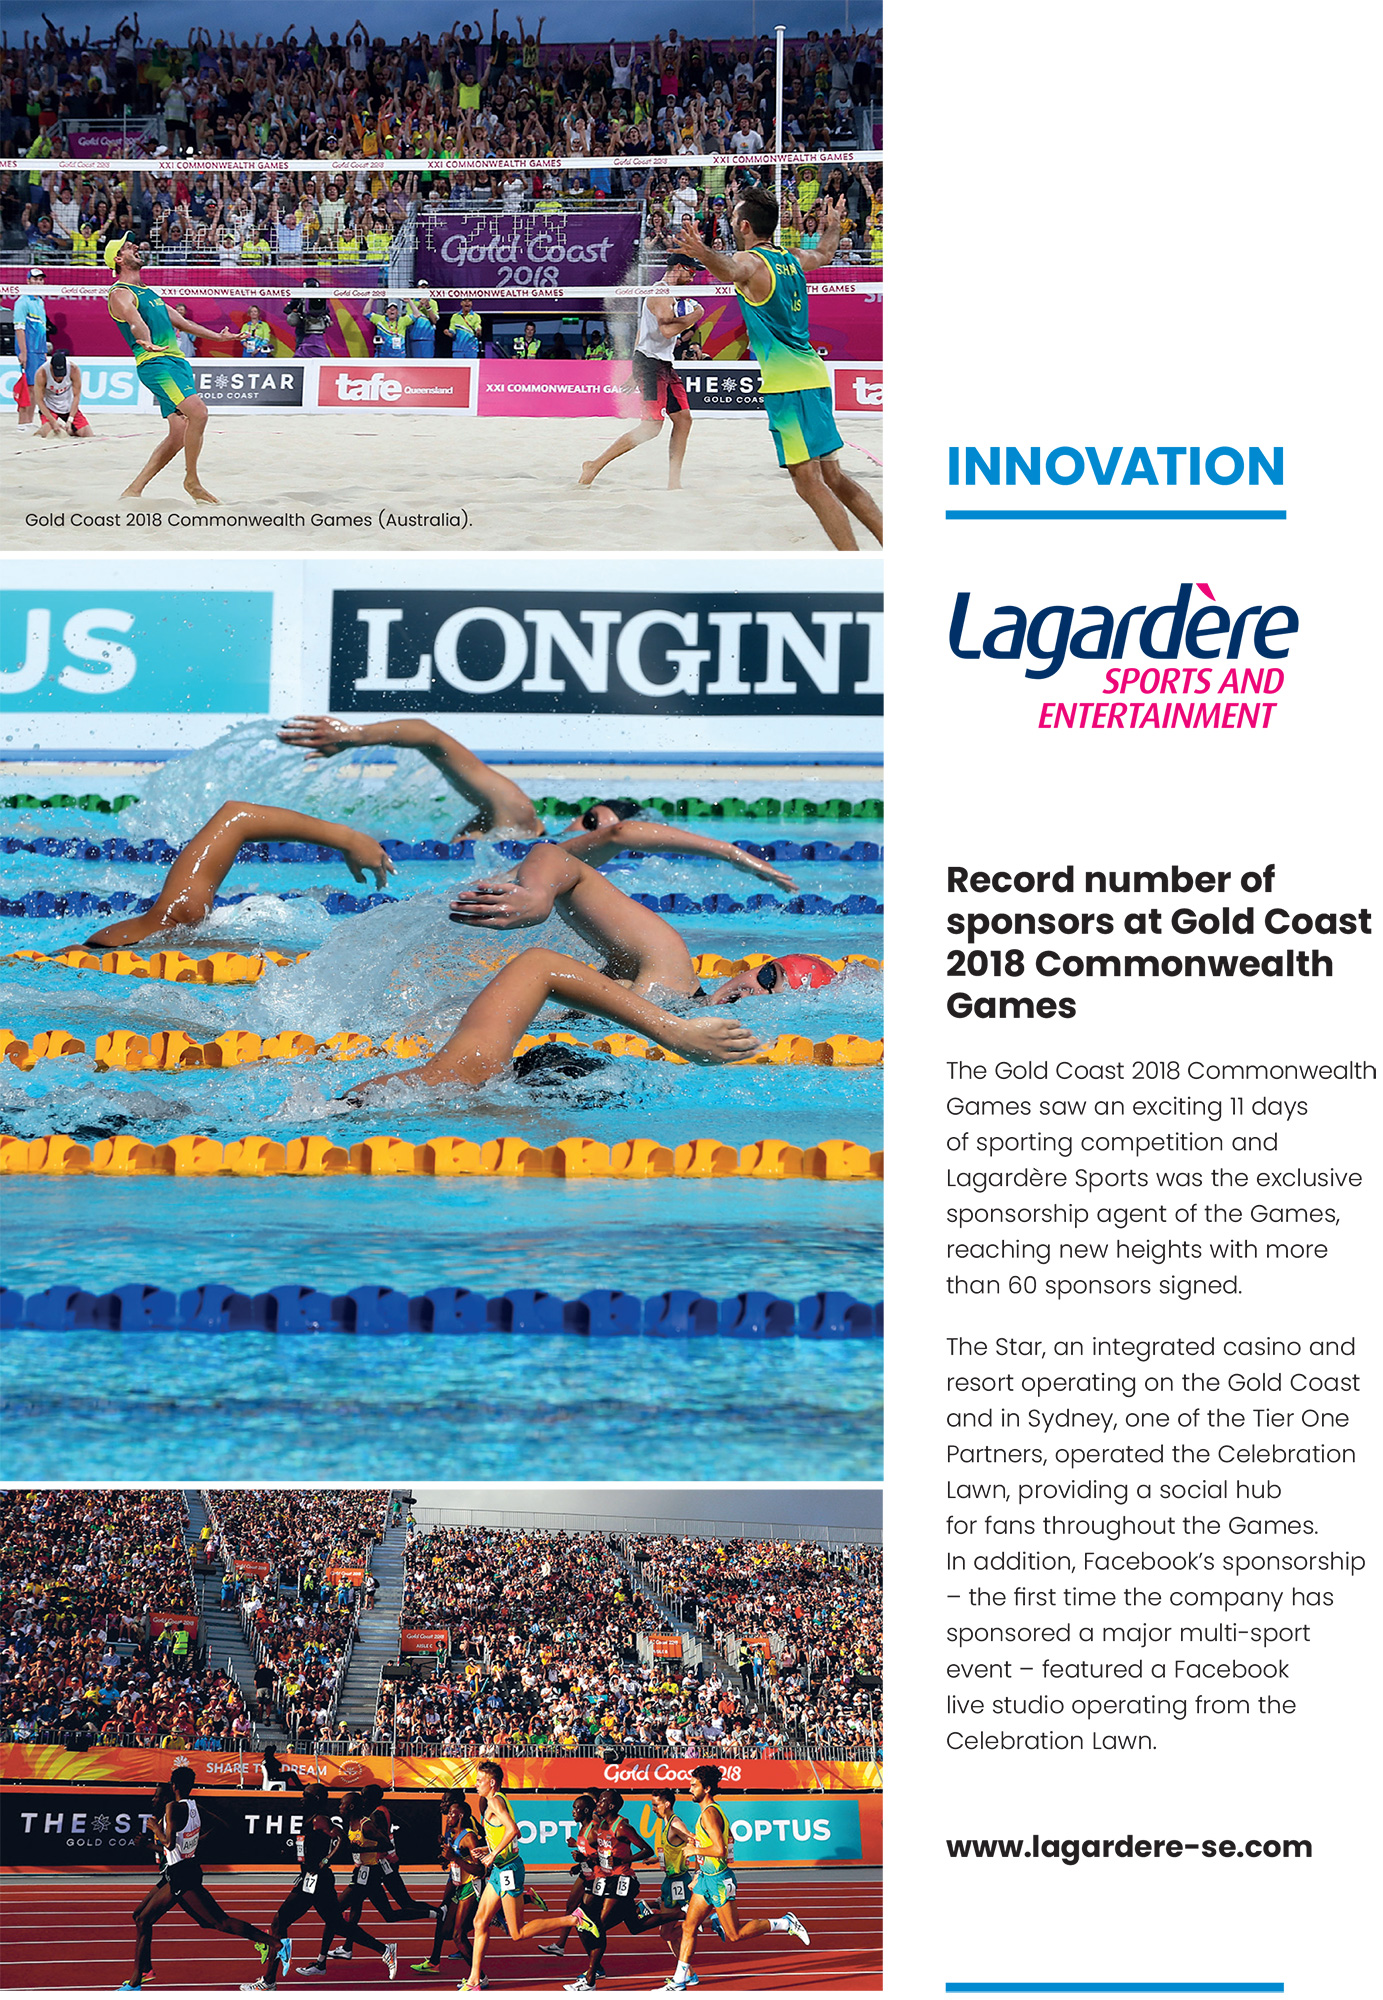 Lagardère Sports and Entertainment: Innovation